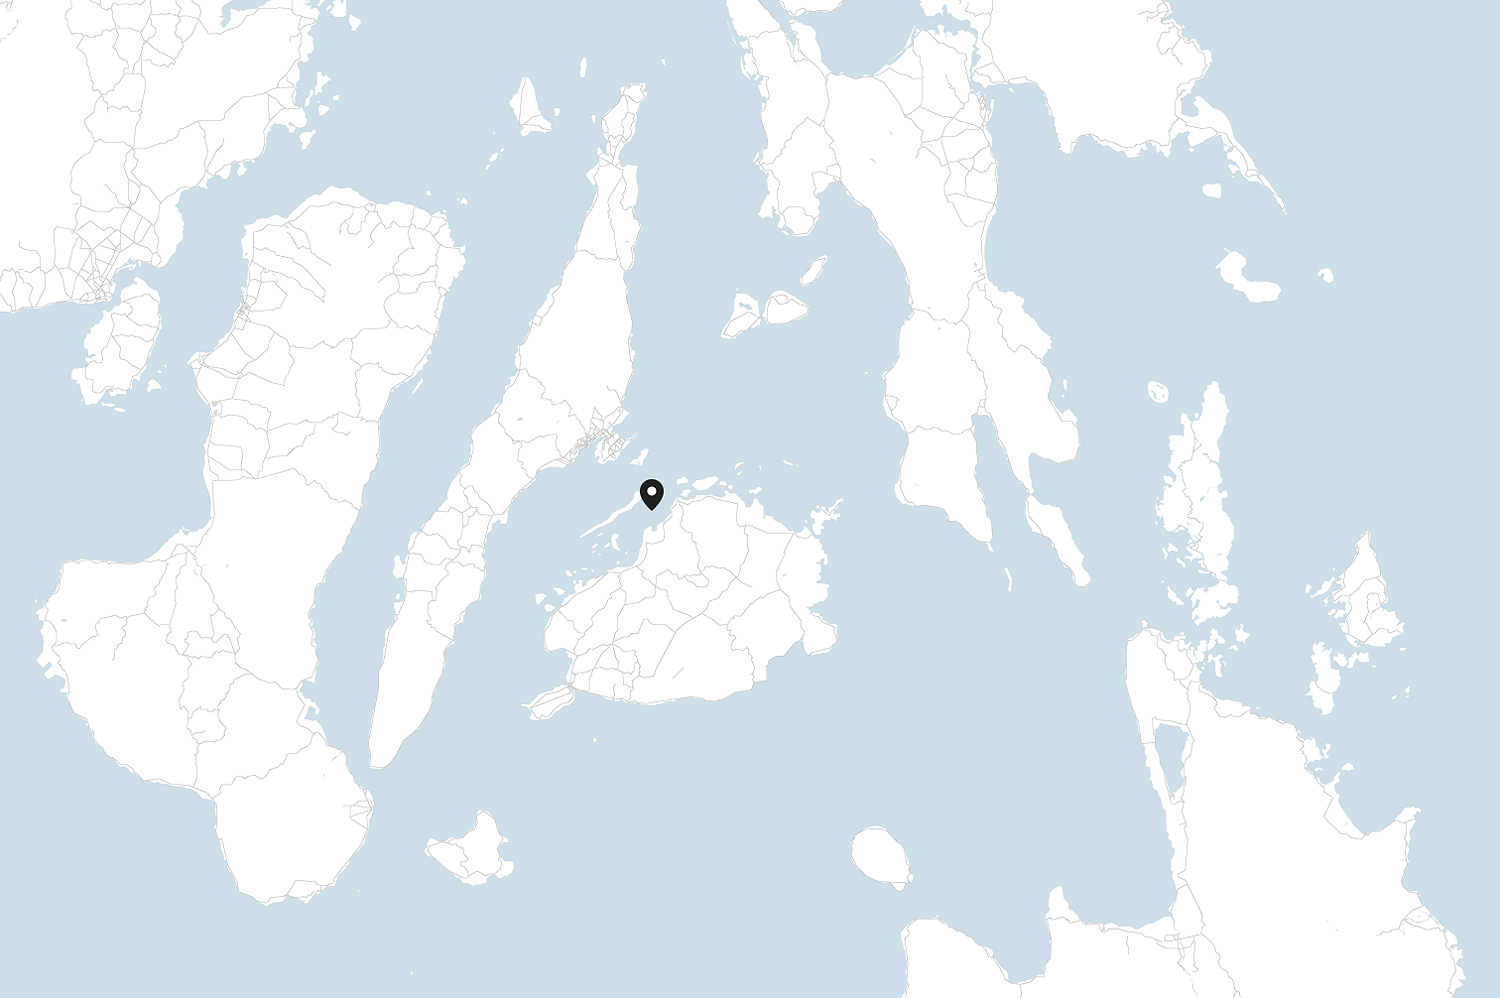 Danajon Bank is located on the north shore of Bohol Province in the central part of the Philippines.